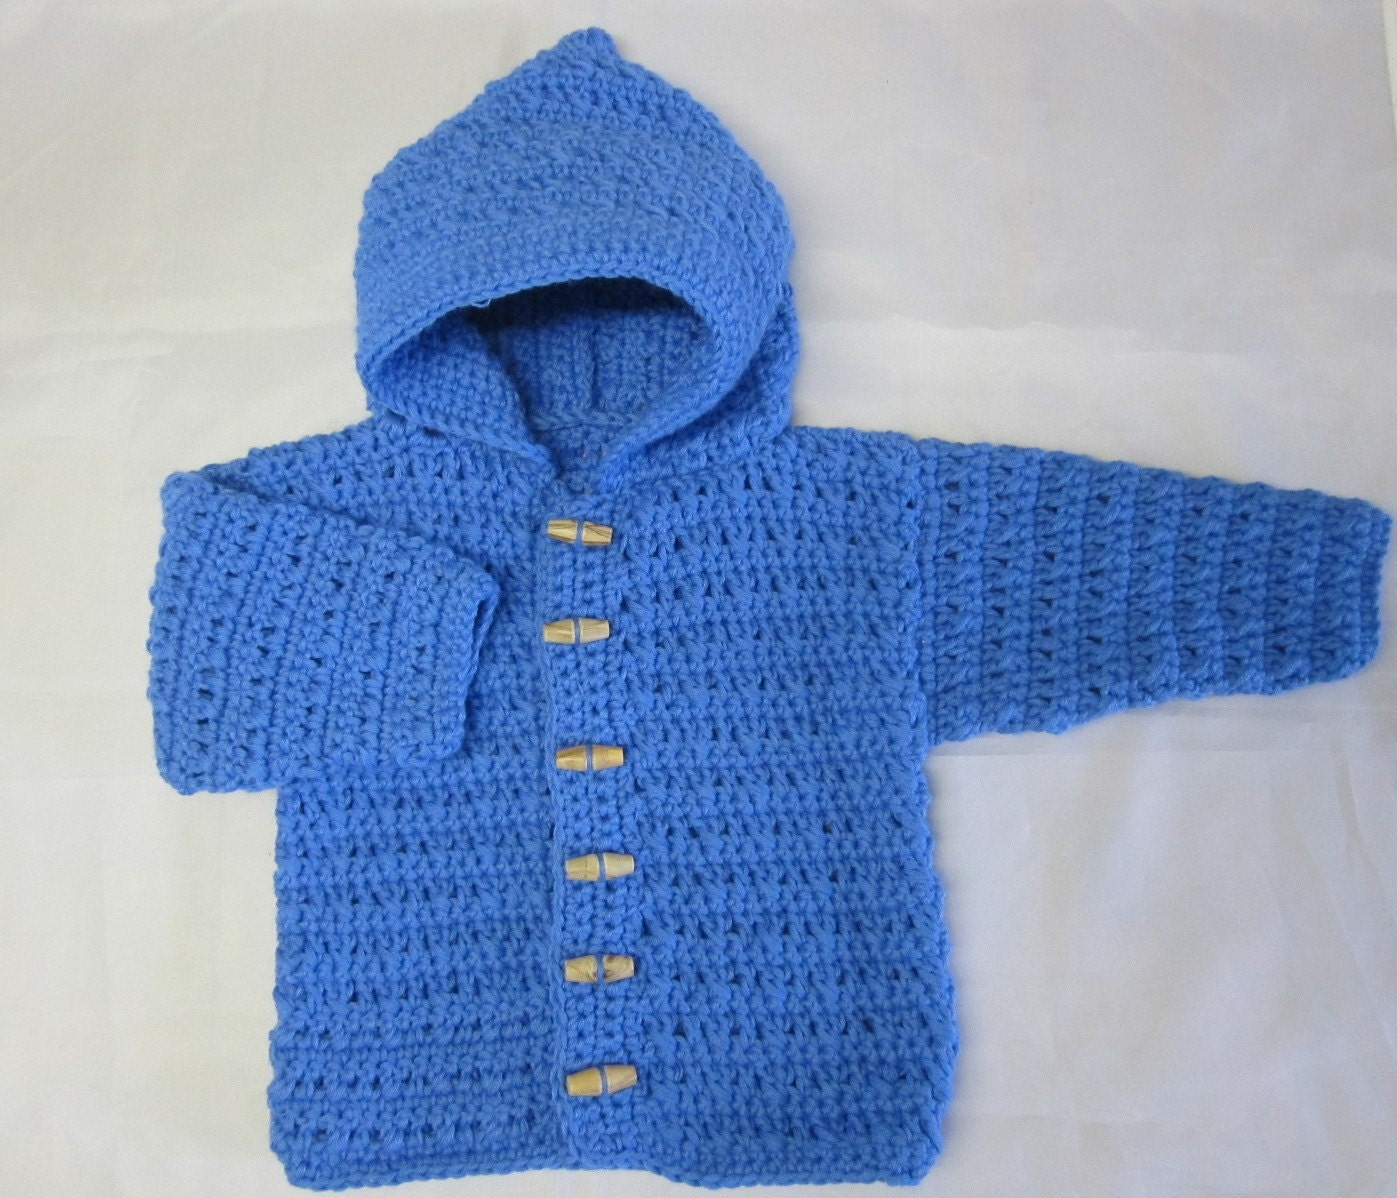 Baby Sweater Jacket Coat Hoodie Cardigan Crochet by AlfieJayne